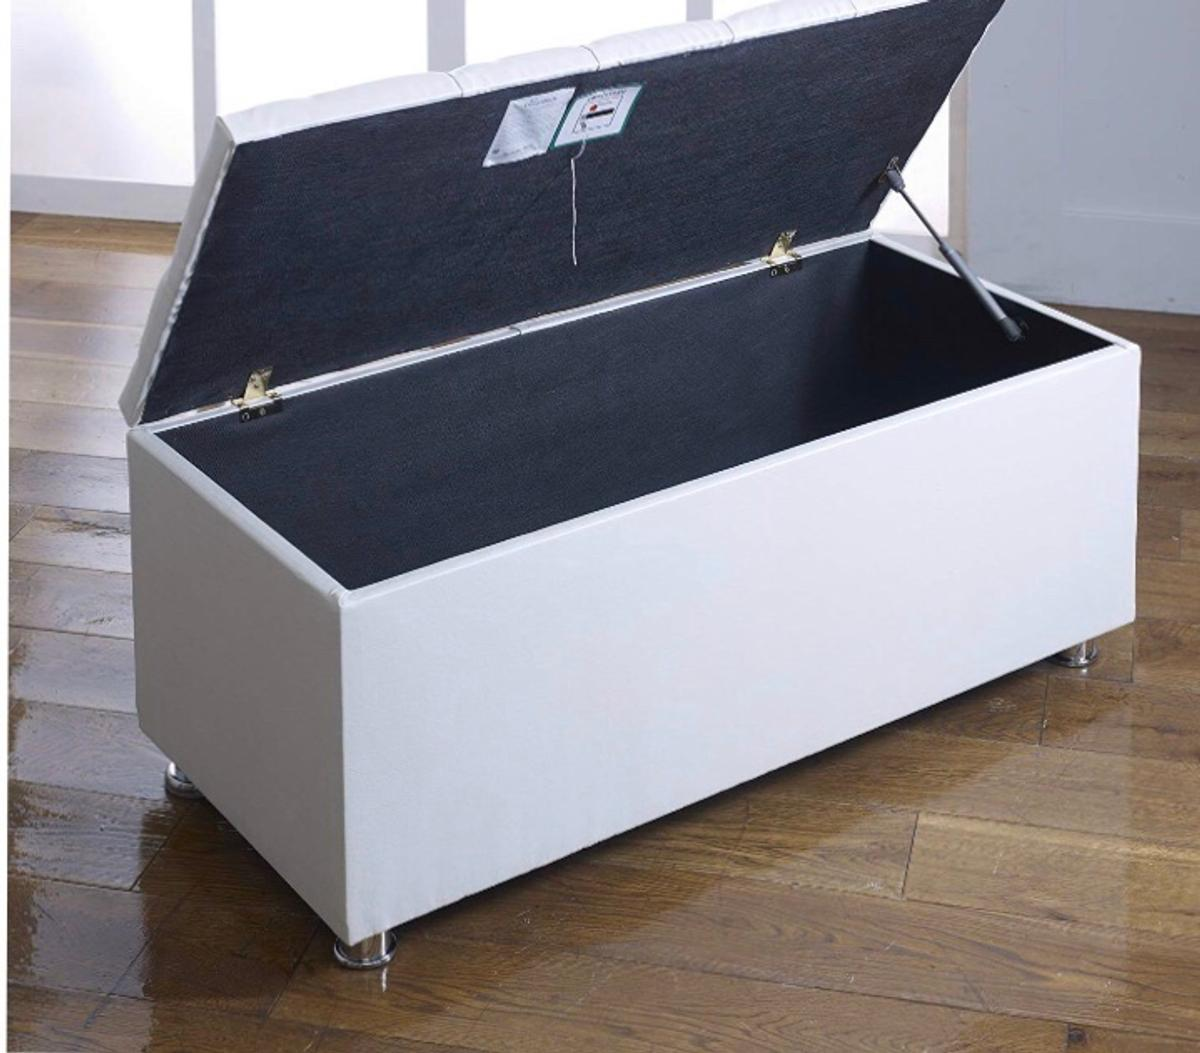 brand new ottoman storage box white